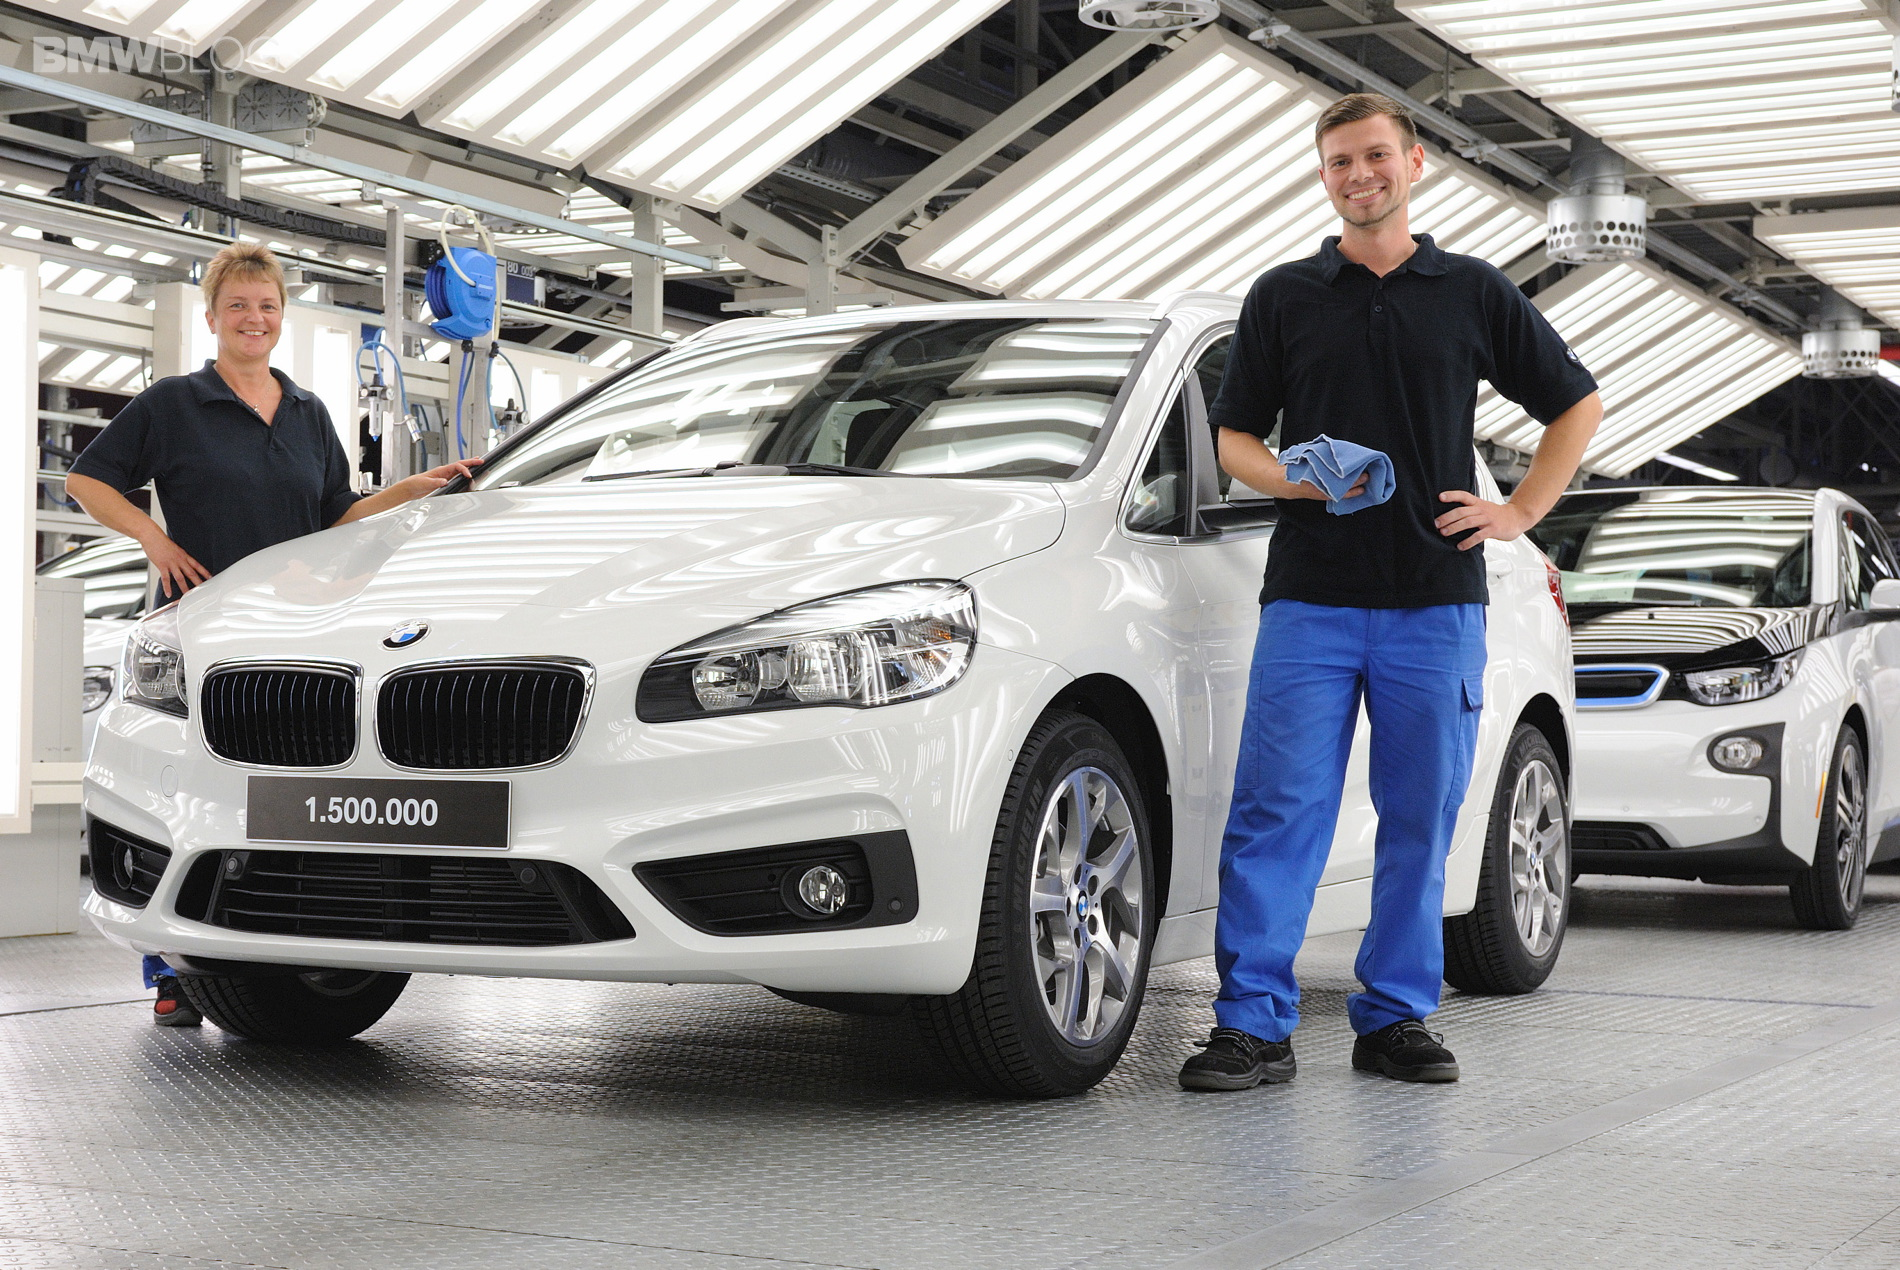 Bmw Celebrates 1 5 Million Cars Built At Leipzig Plant